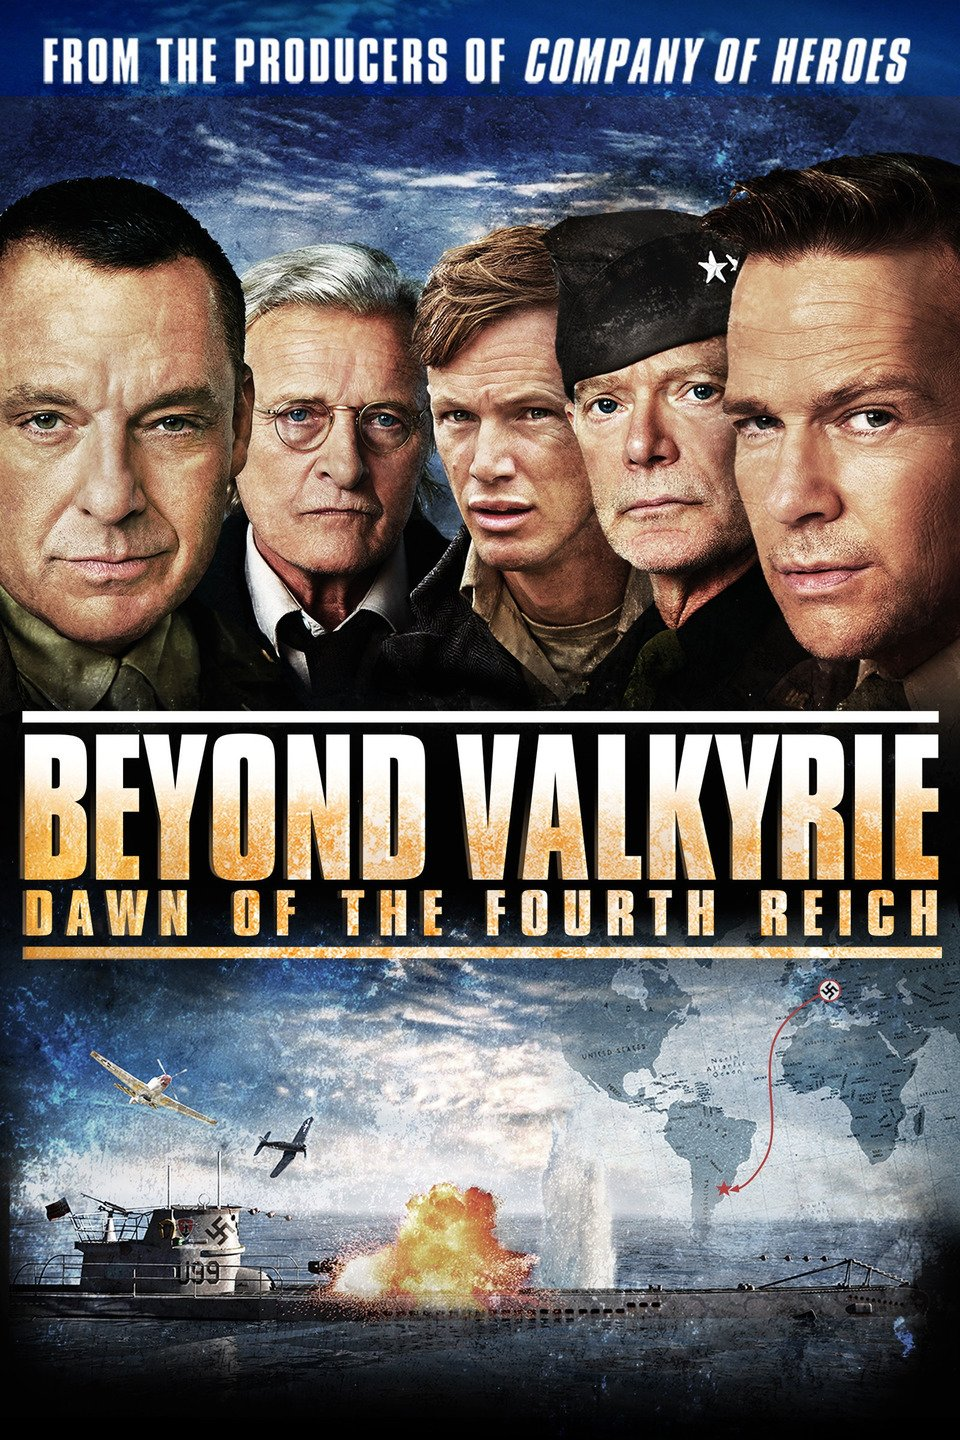 Beyond Valkyrie: Dawn of the 4th Reich-Beyond Valkyrie: Dawn of the 4th Reich